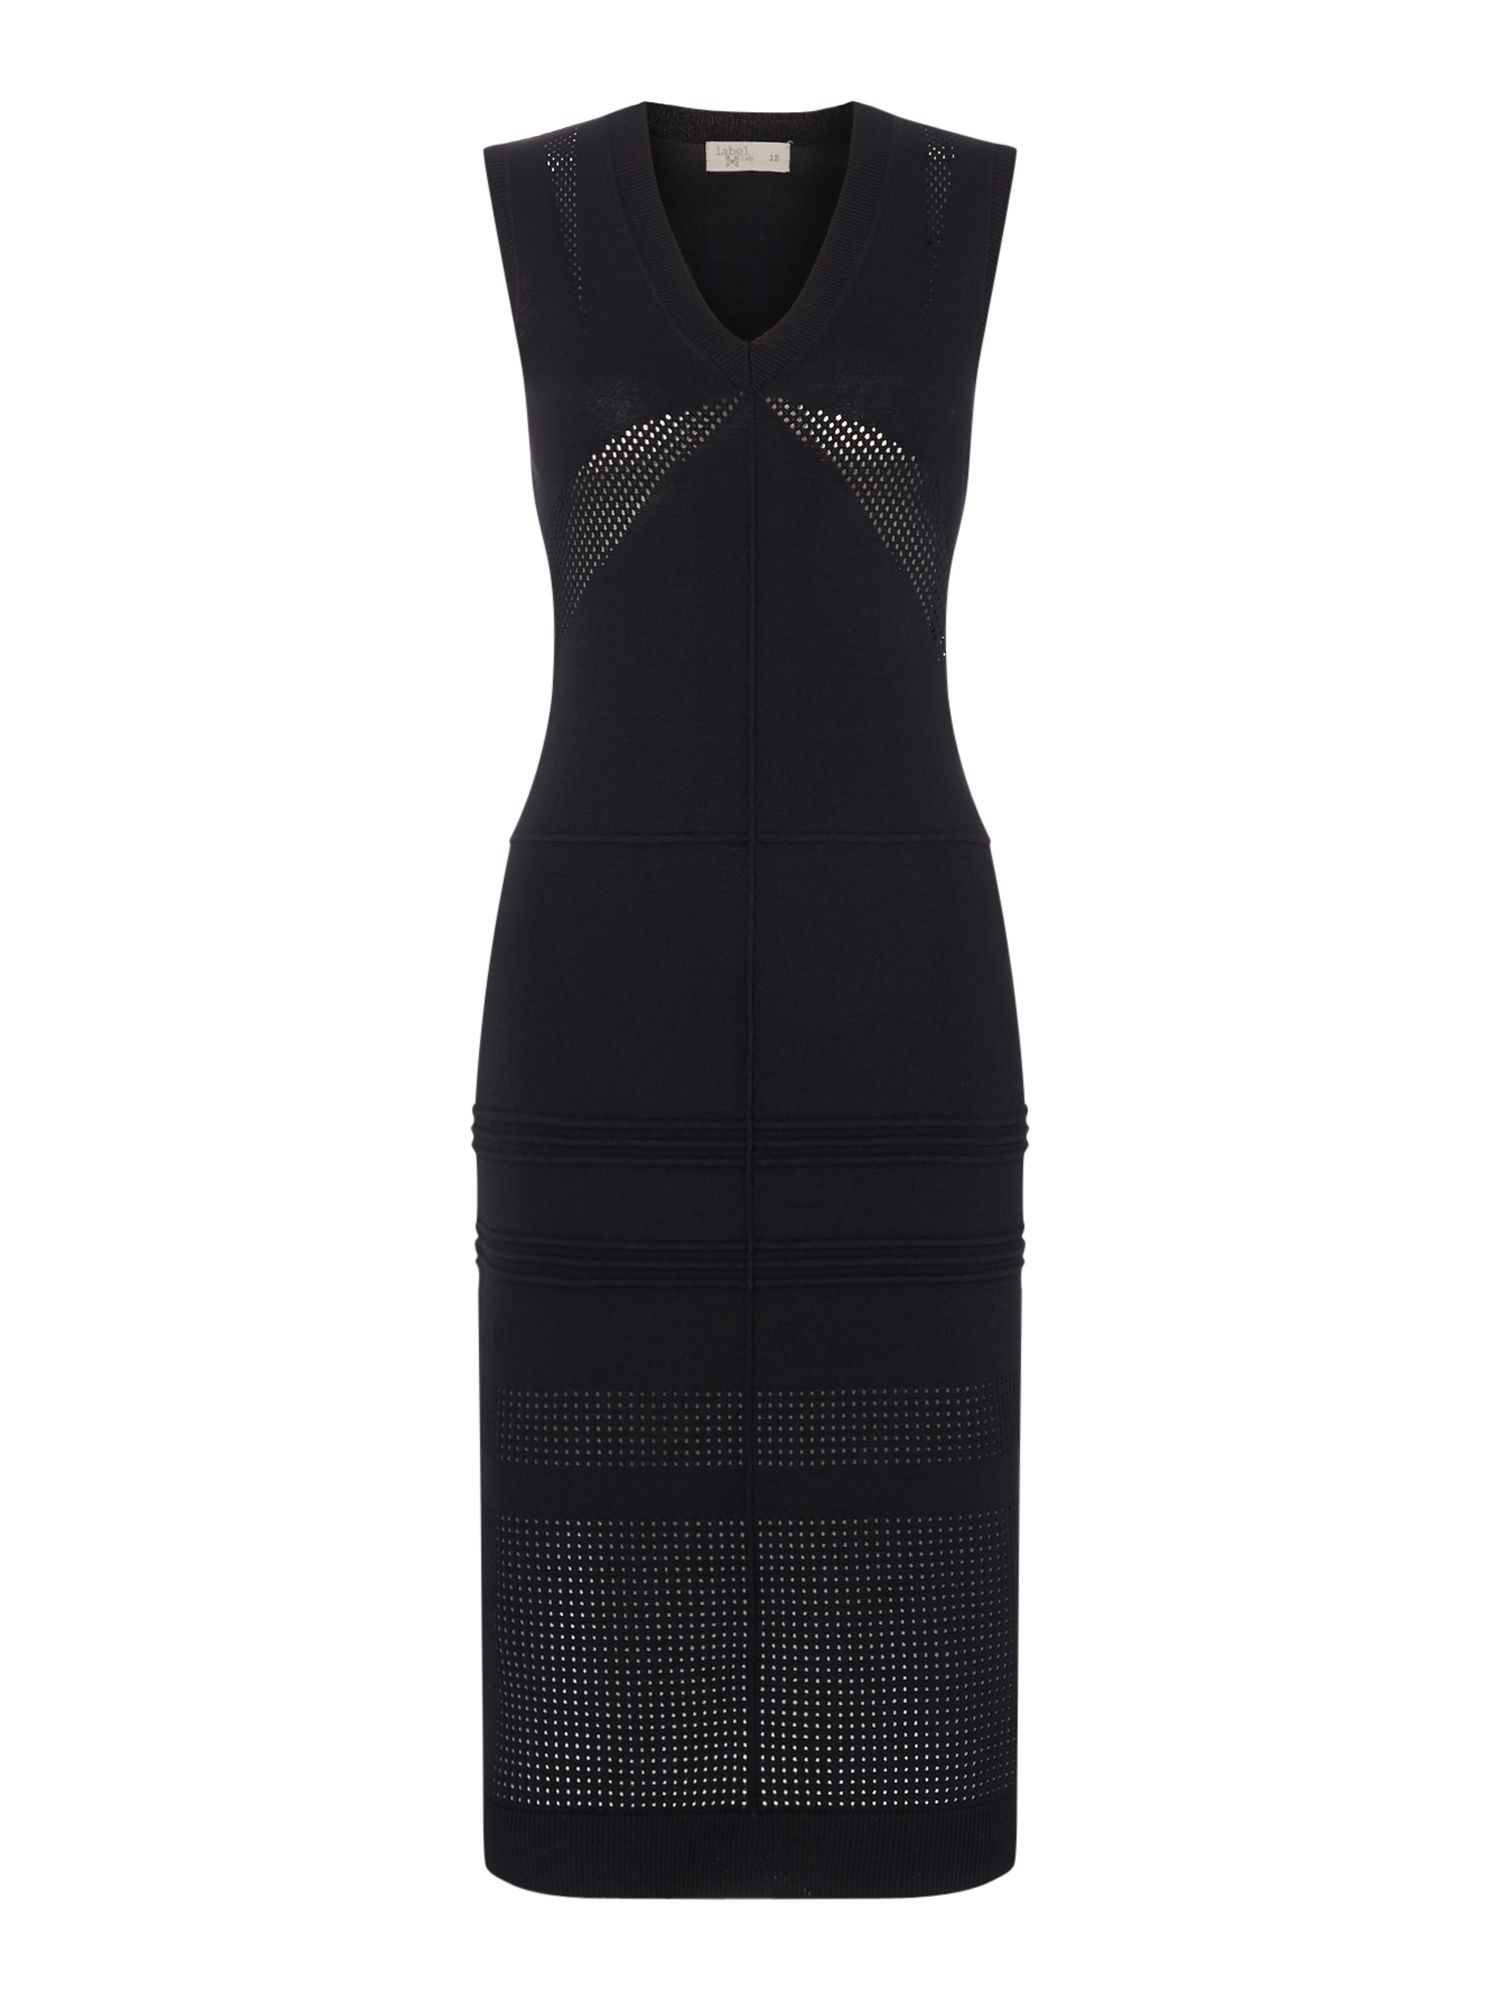 Label Lab Sporty Dry Knit Coloumn Dress, Black